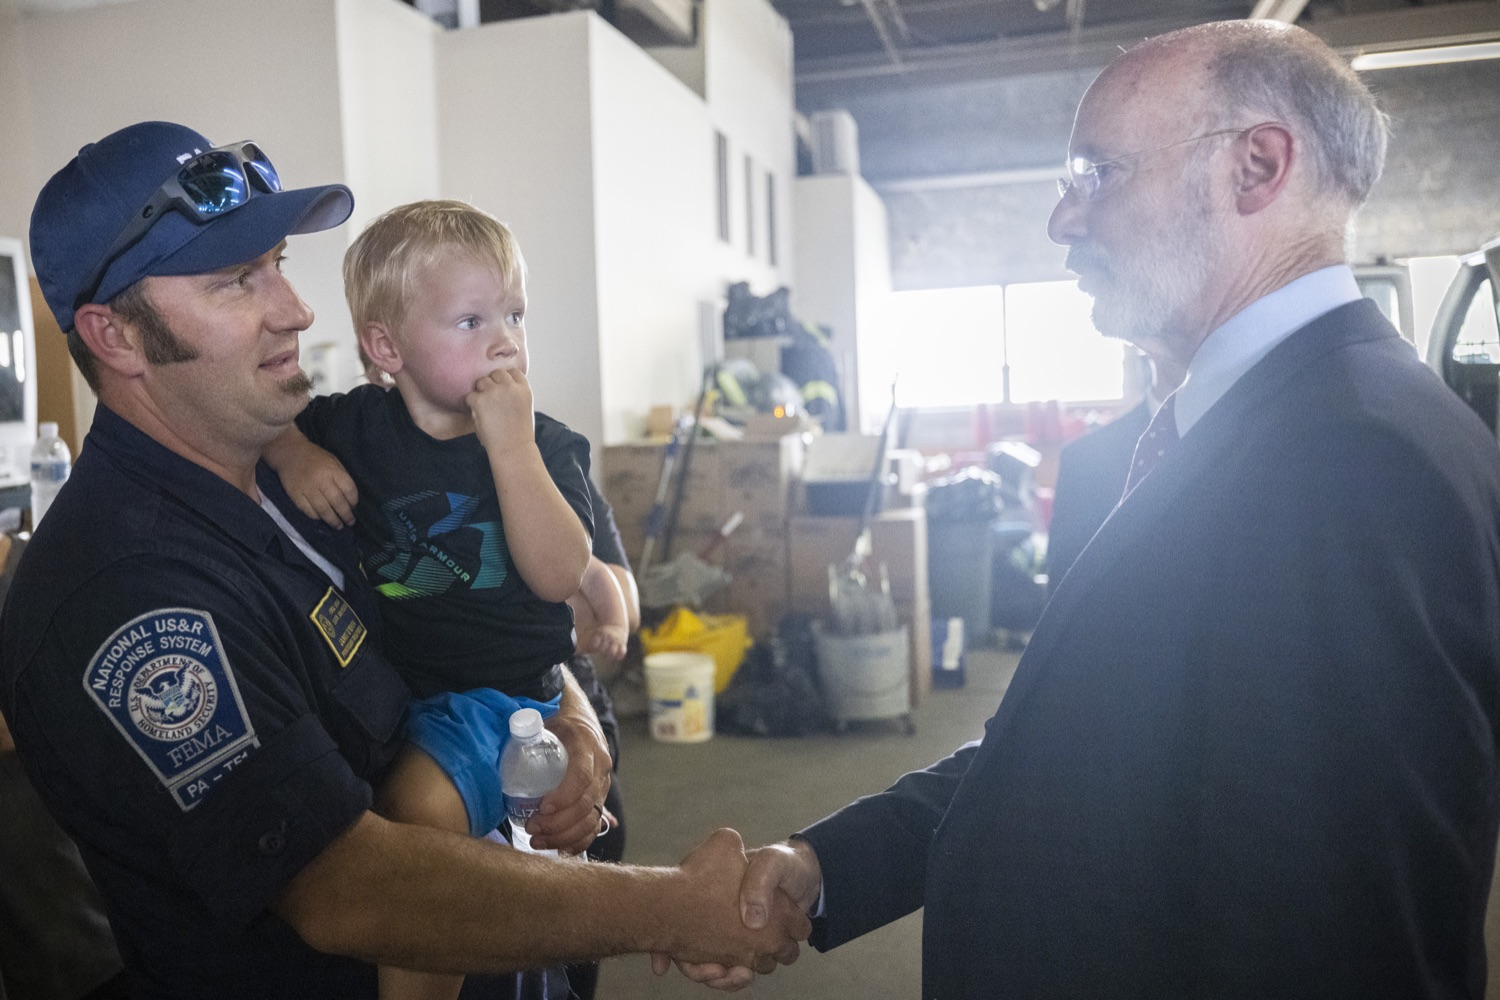 """<a href=""""https://filesource.wostreaming.net/commonwealthofpa/photo/18936_gov_taskforceone_dz_004.jpg"""" target=""""_blank"""">⇣Download Photo<br></a>Governor Tom Wolf speaking to returning Pennsylvania-Task Force 1. Members.Governor Tom Wolf thanked members of Pennsylvania-Task Force 1 (PA- TF1), who returned today to Philadelphia after spending two weeks assisting with search and rescue efforts at the site of the recent deadly building collapse in Surfside, Florida.  Philadelphia, Pa.  July 16, 2021"""